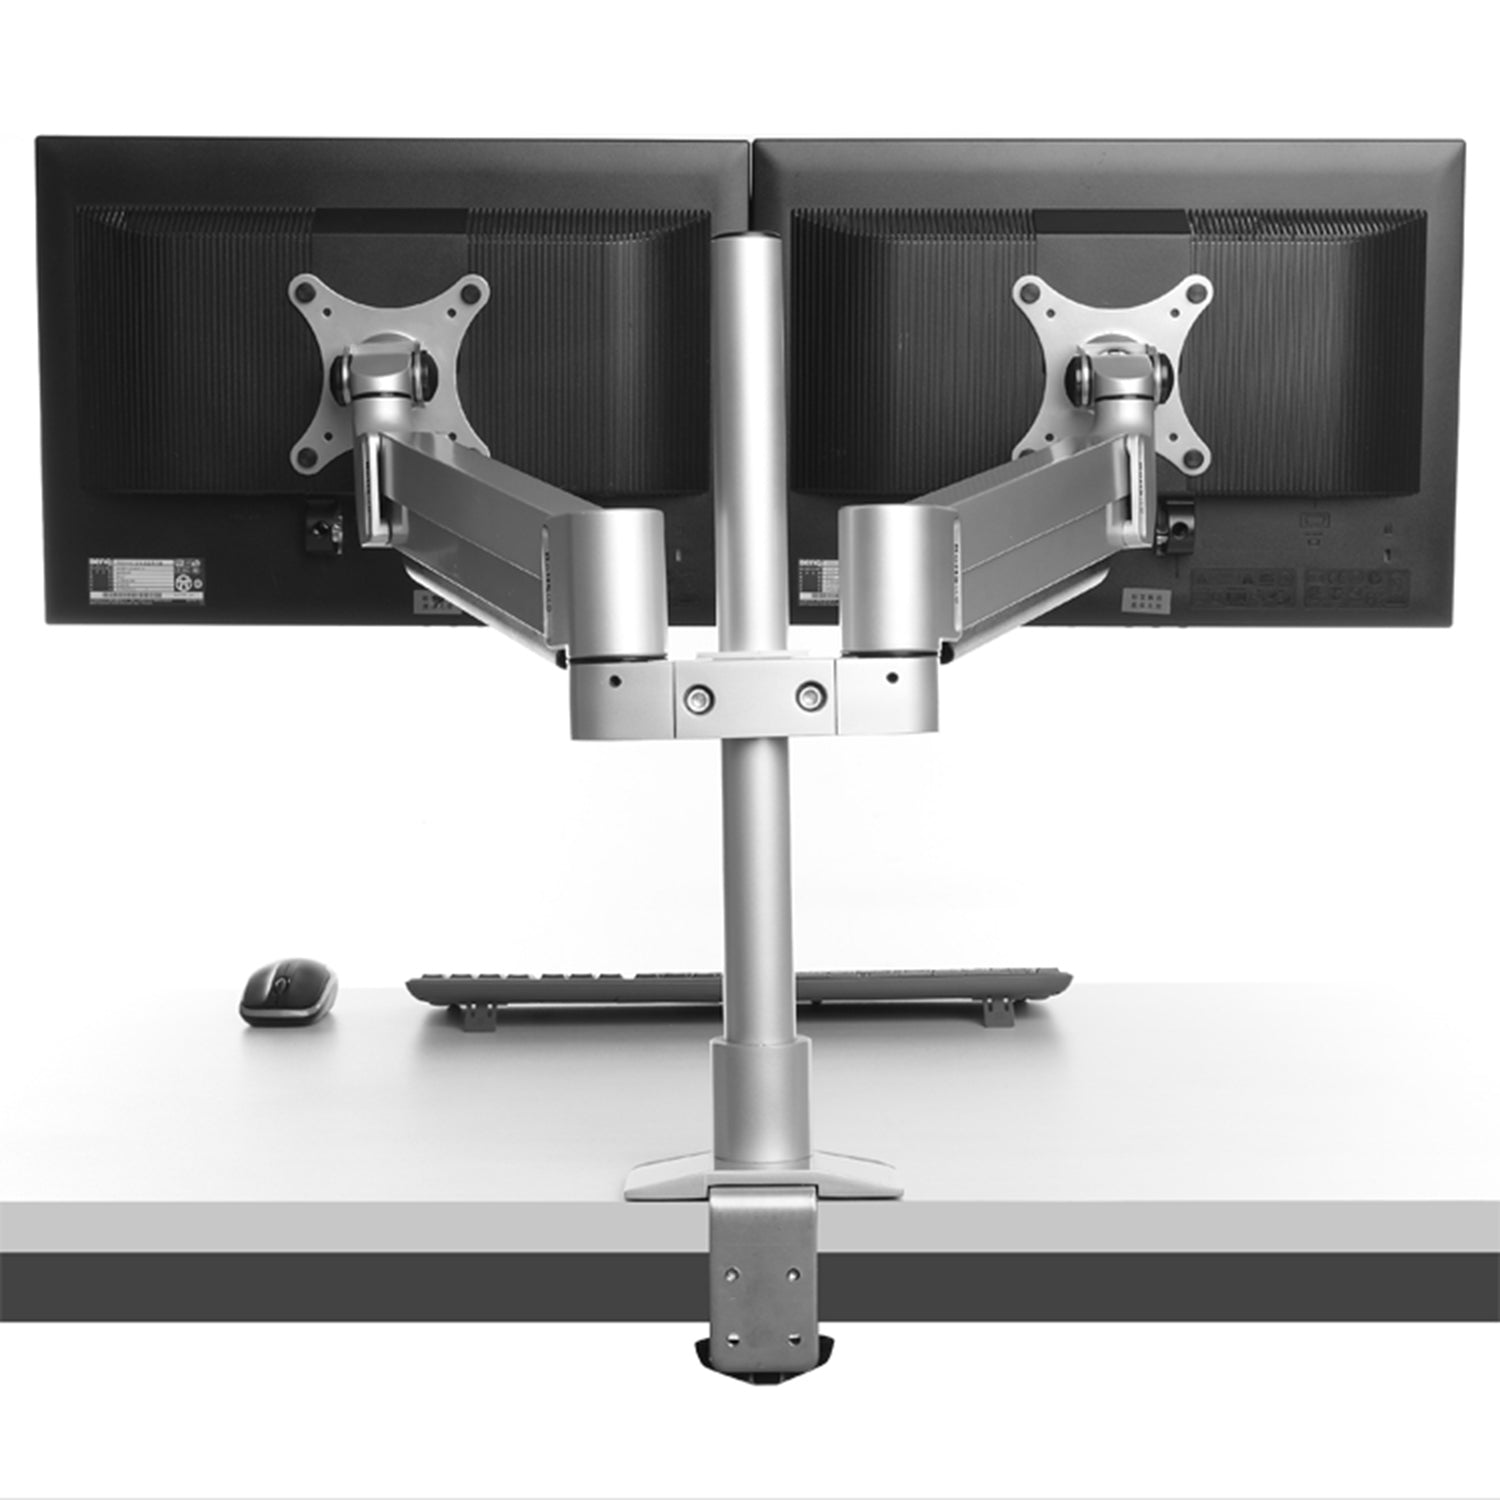 ThingyClub D200 Gas Spring Universal Double Twin LCD LED Desk Mount